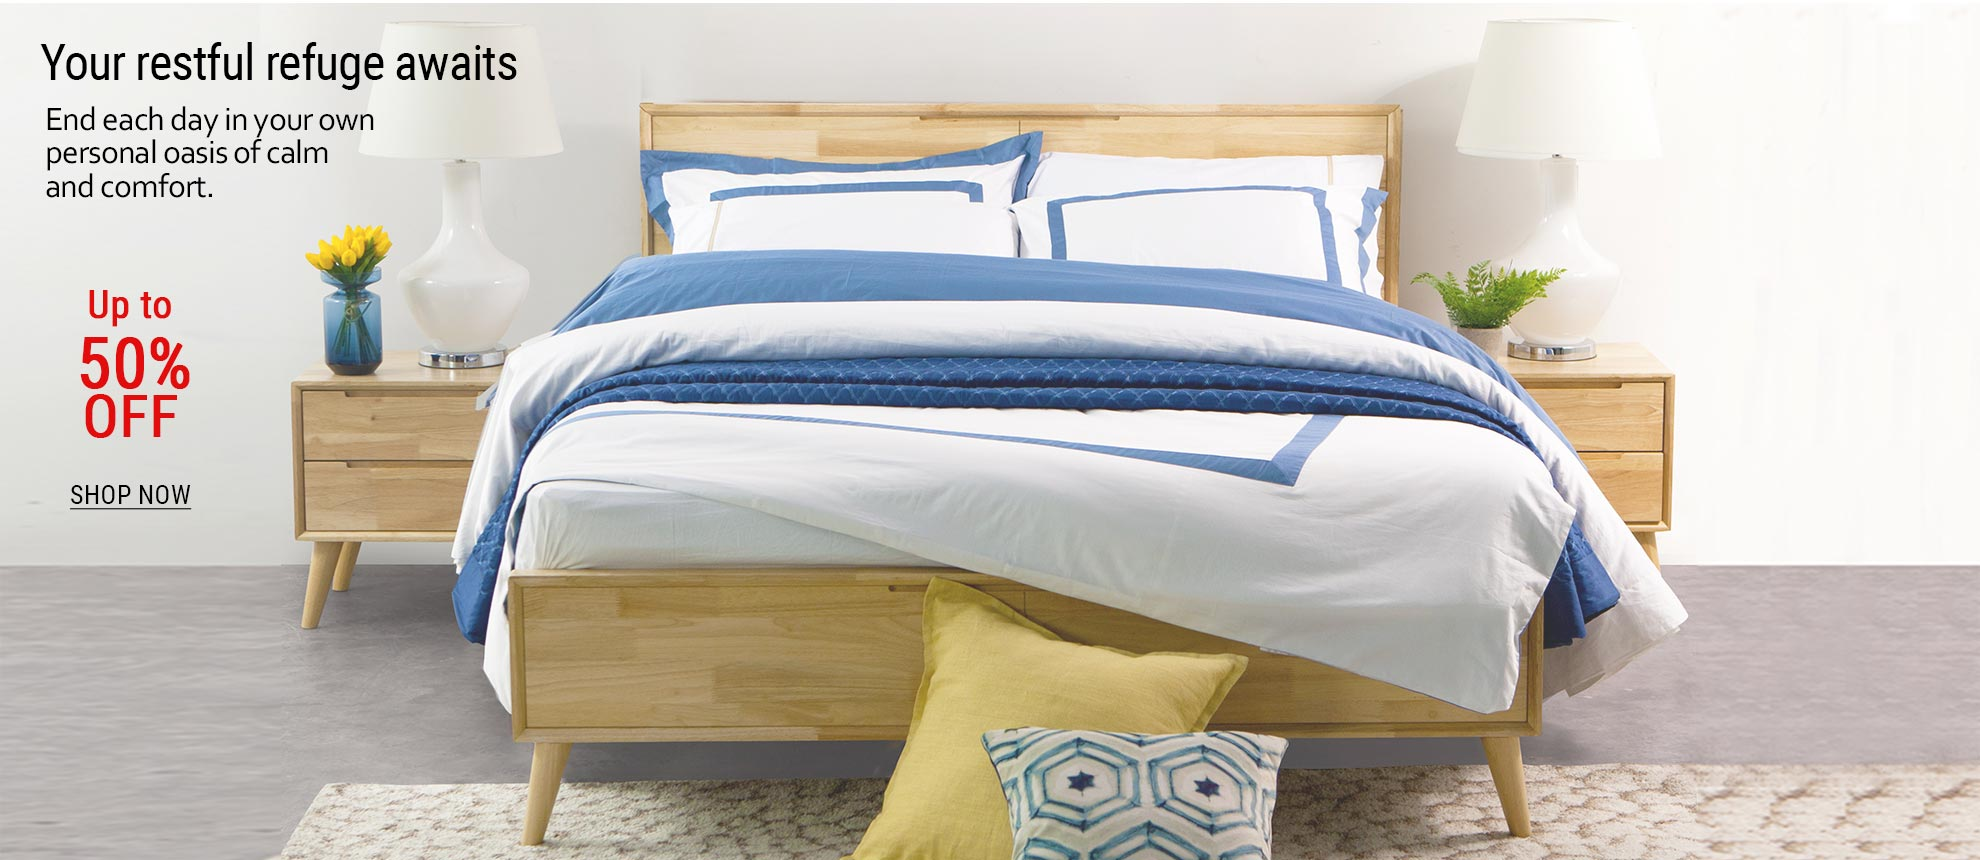 08-Scandinavian inspired bedroom with wooden bedframe white and blue linens and side tables.jpg